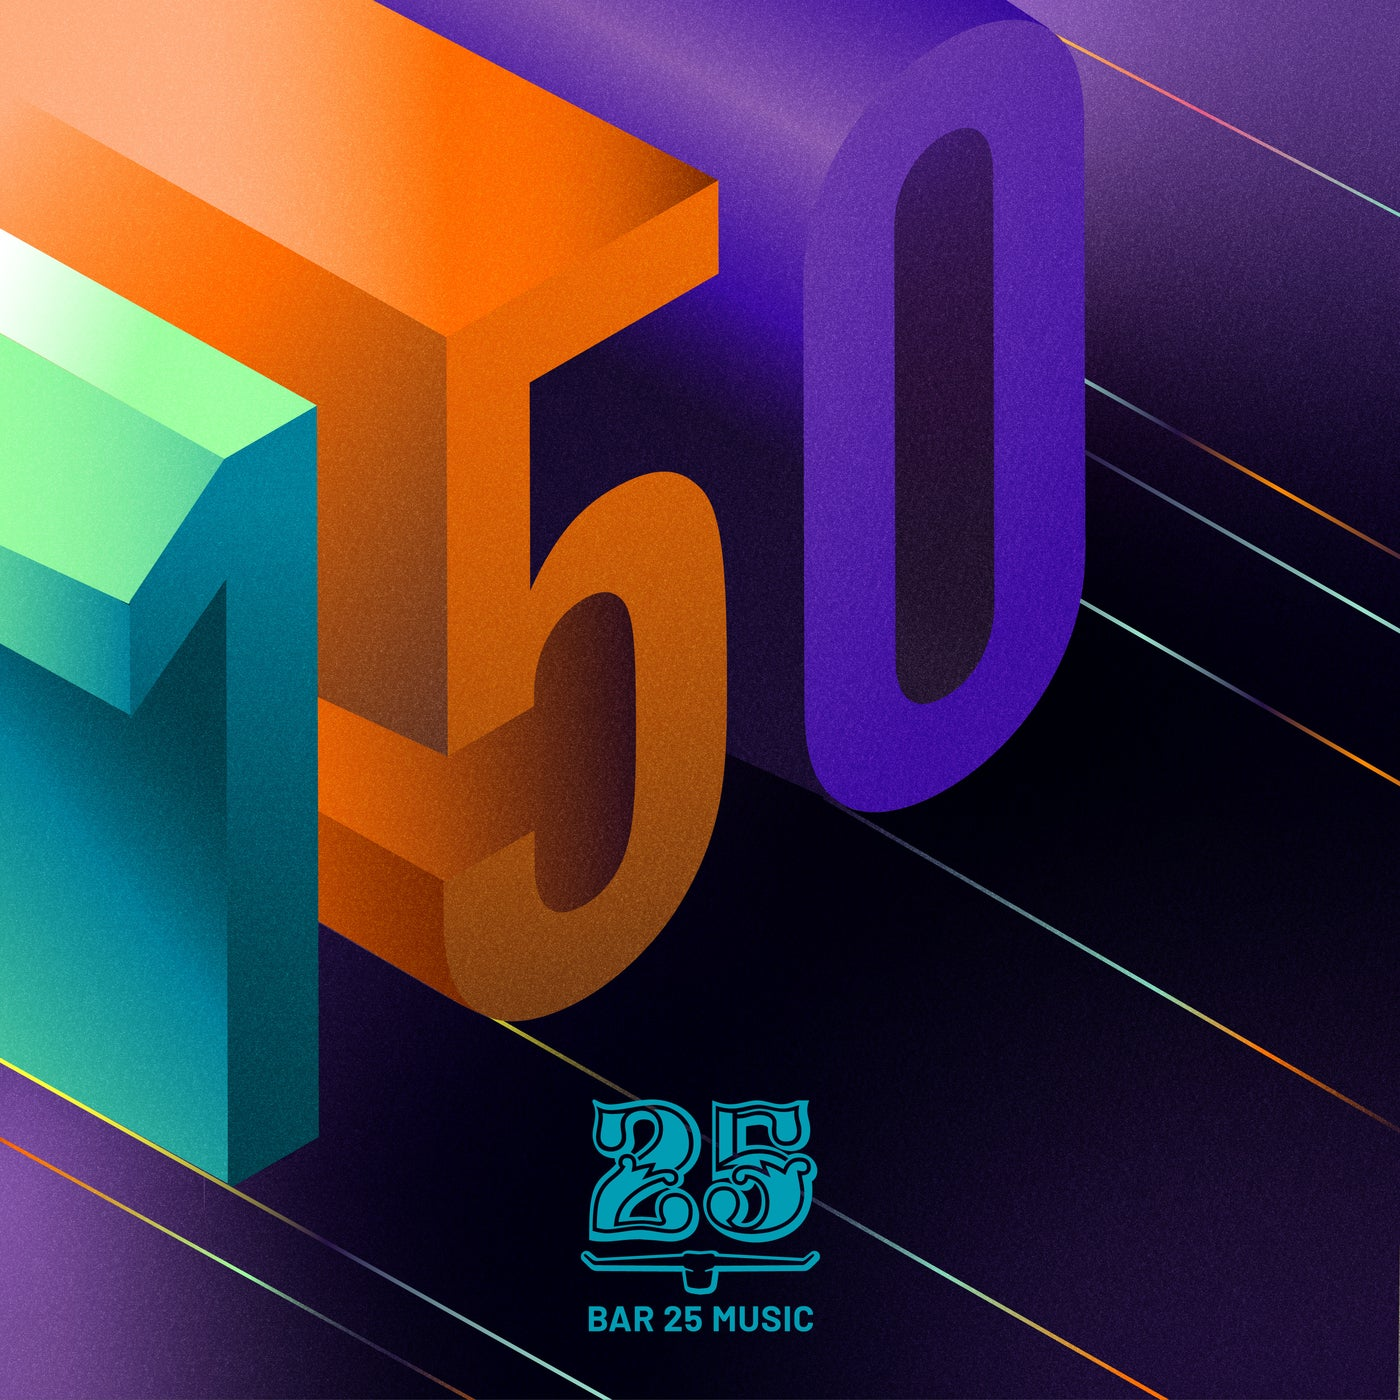 Download Bar25: 150 on Electrobuzz